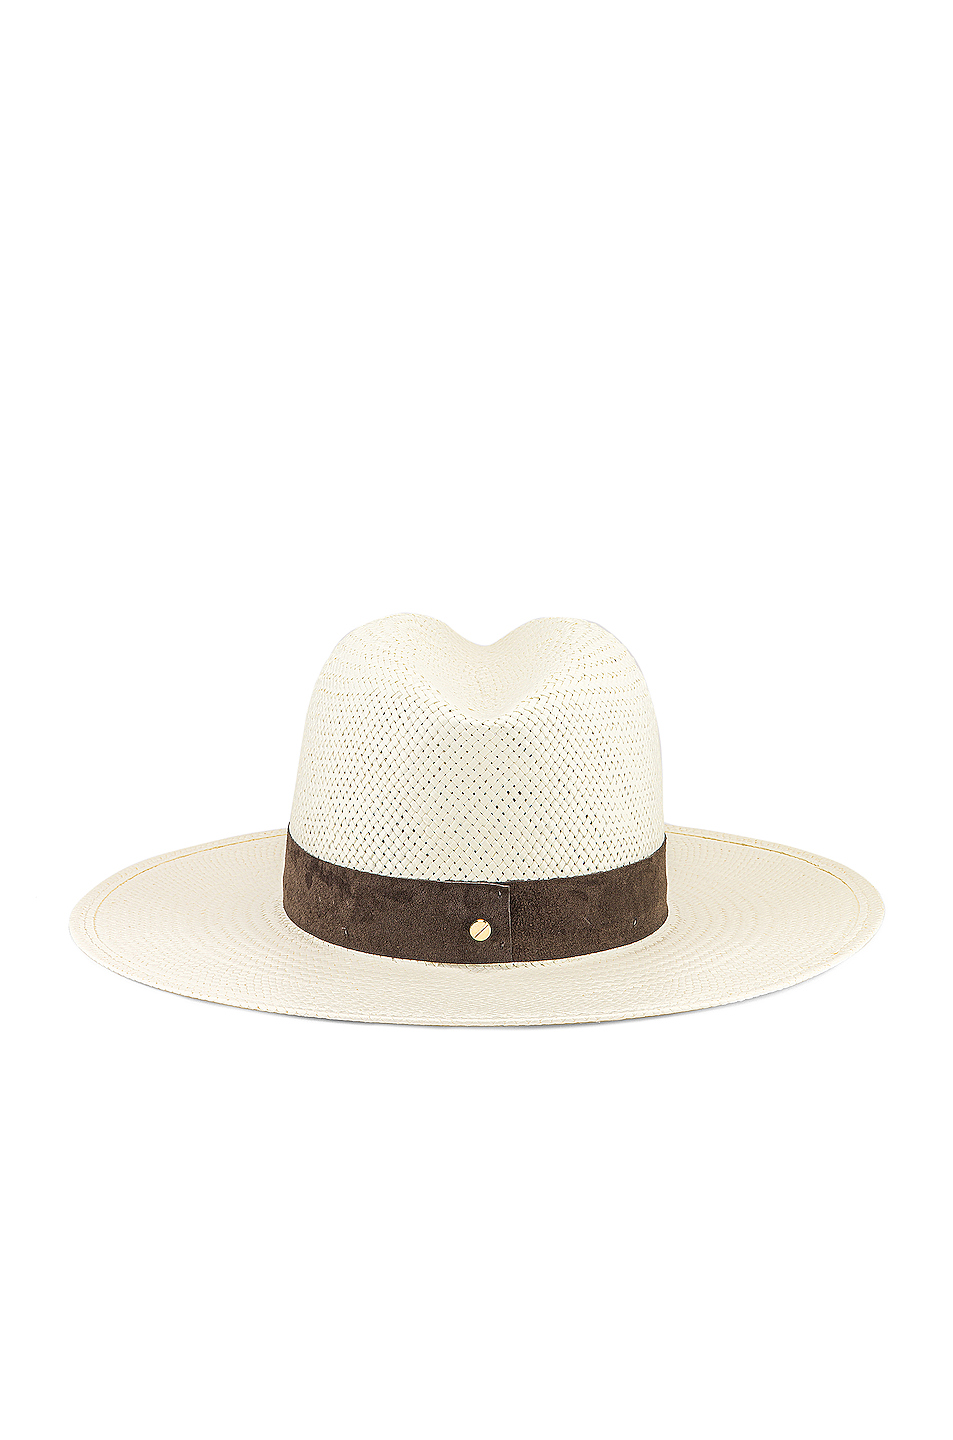 Janessa Leone Marcell Packable Hat